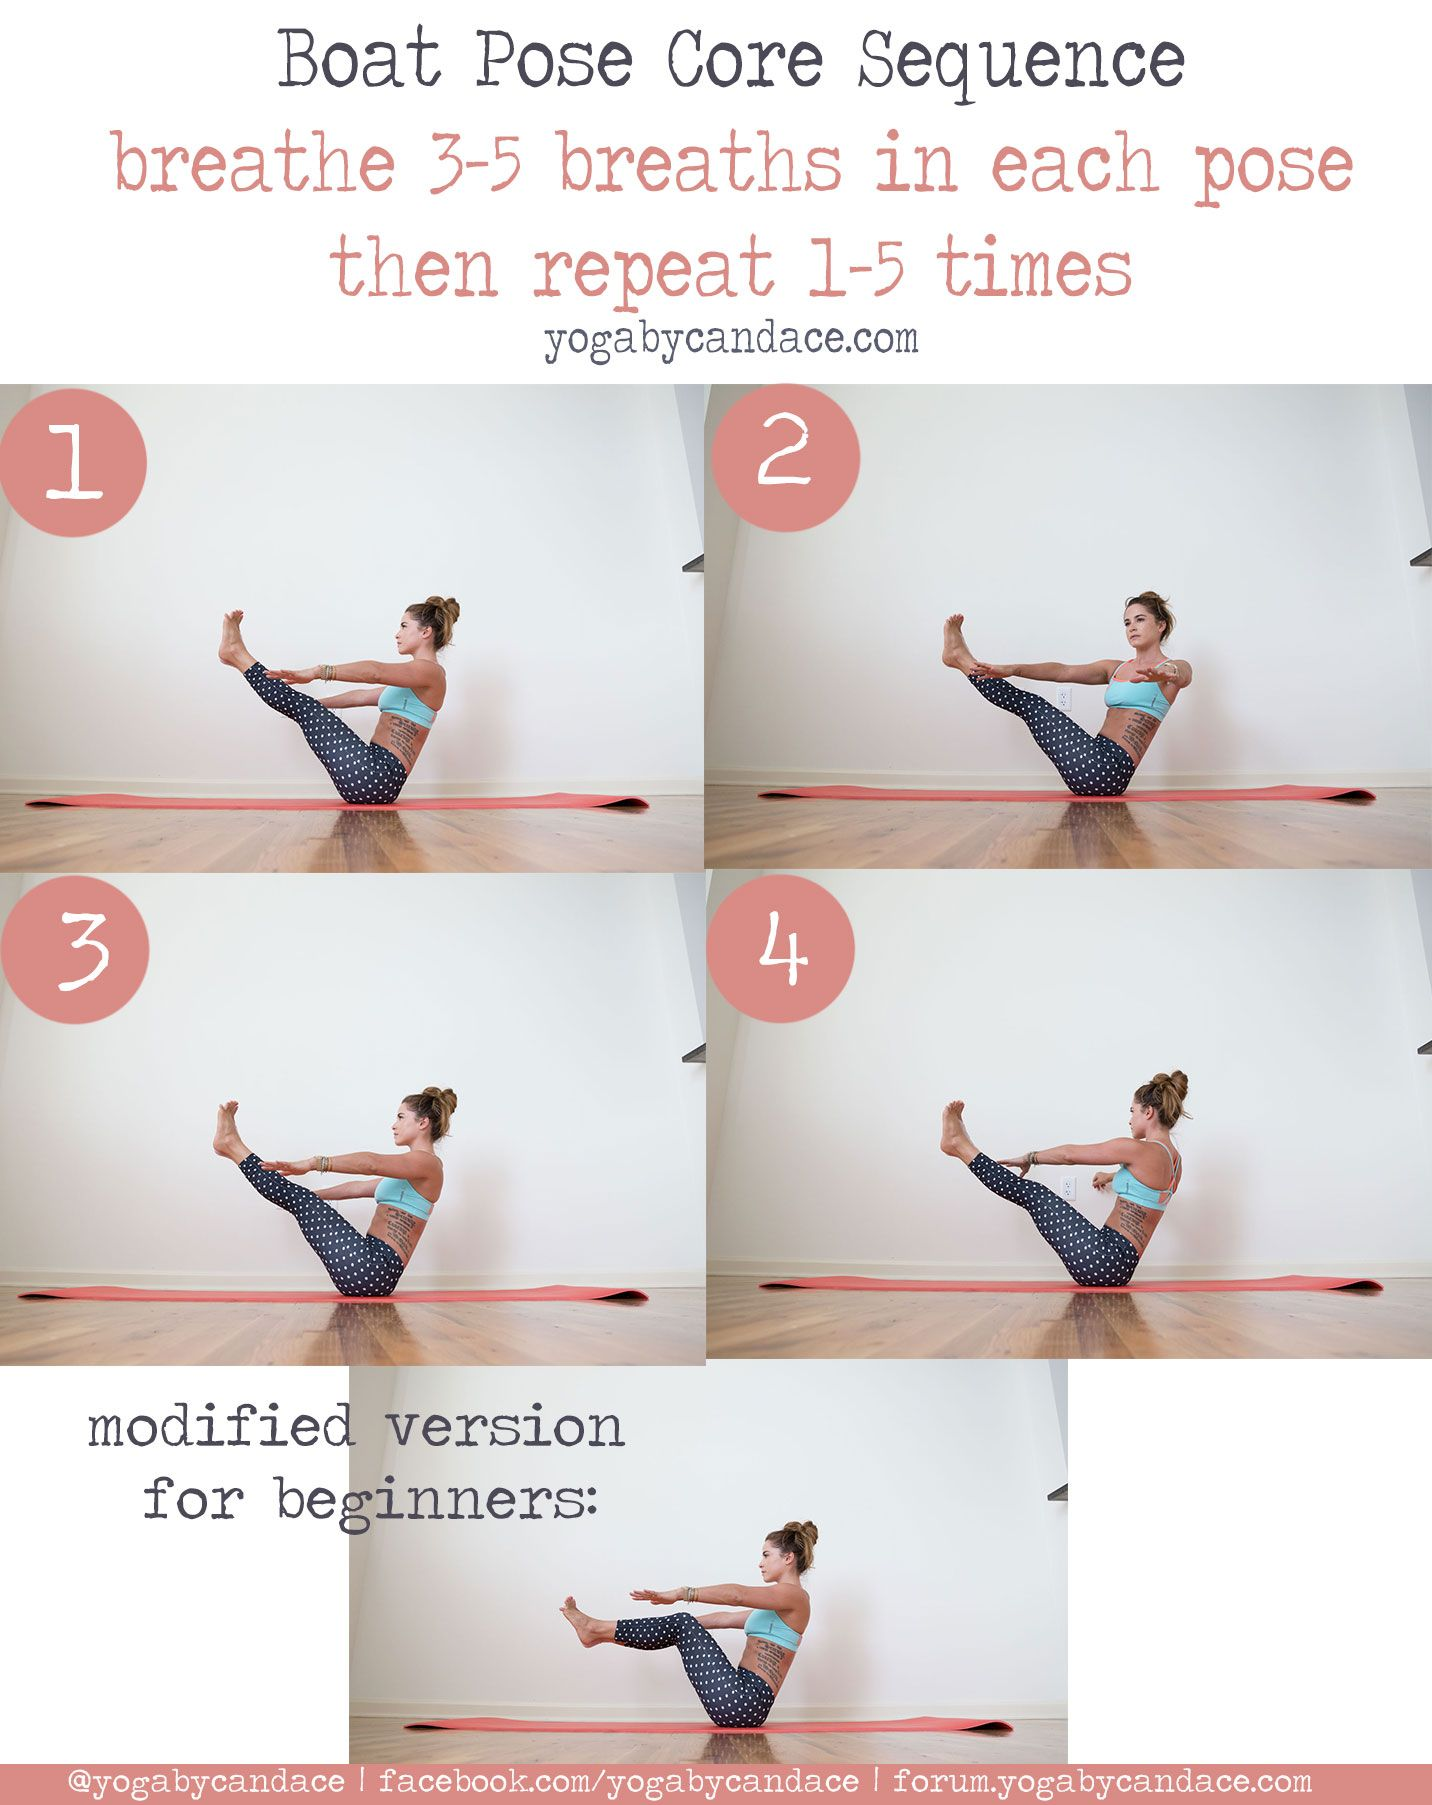 Core Strengthening Boat Pose Sequence Yogabycandace Boat Pose Yoga Poses For Beginners Core Strengthening Yoga